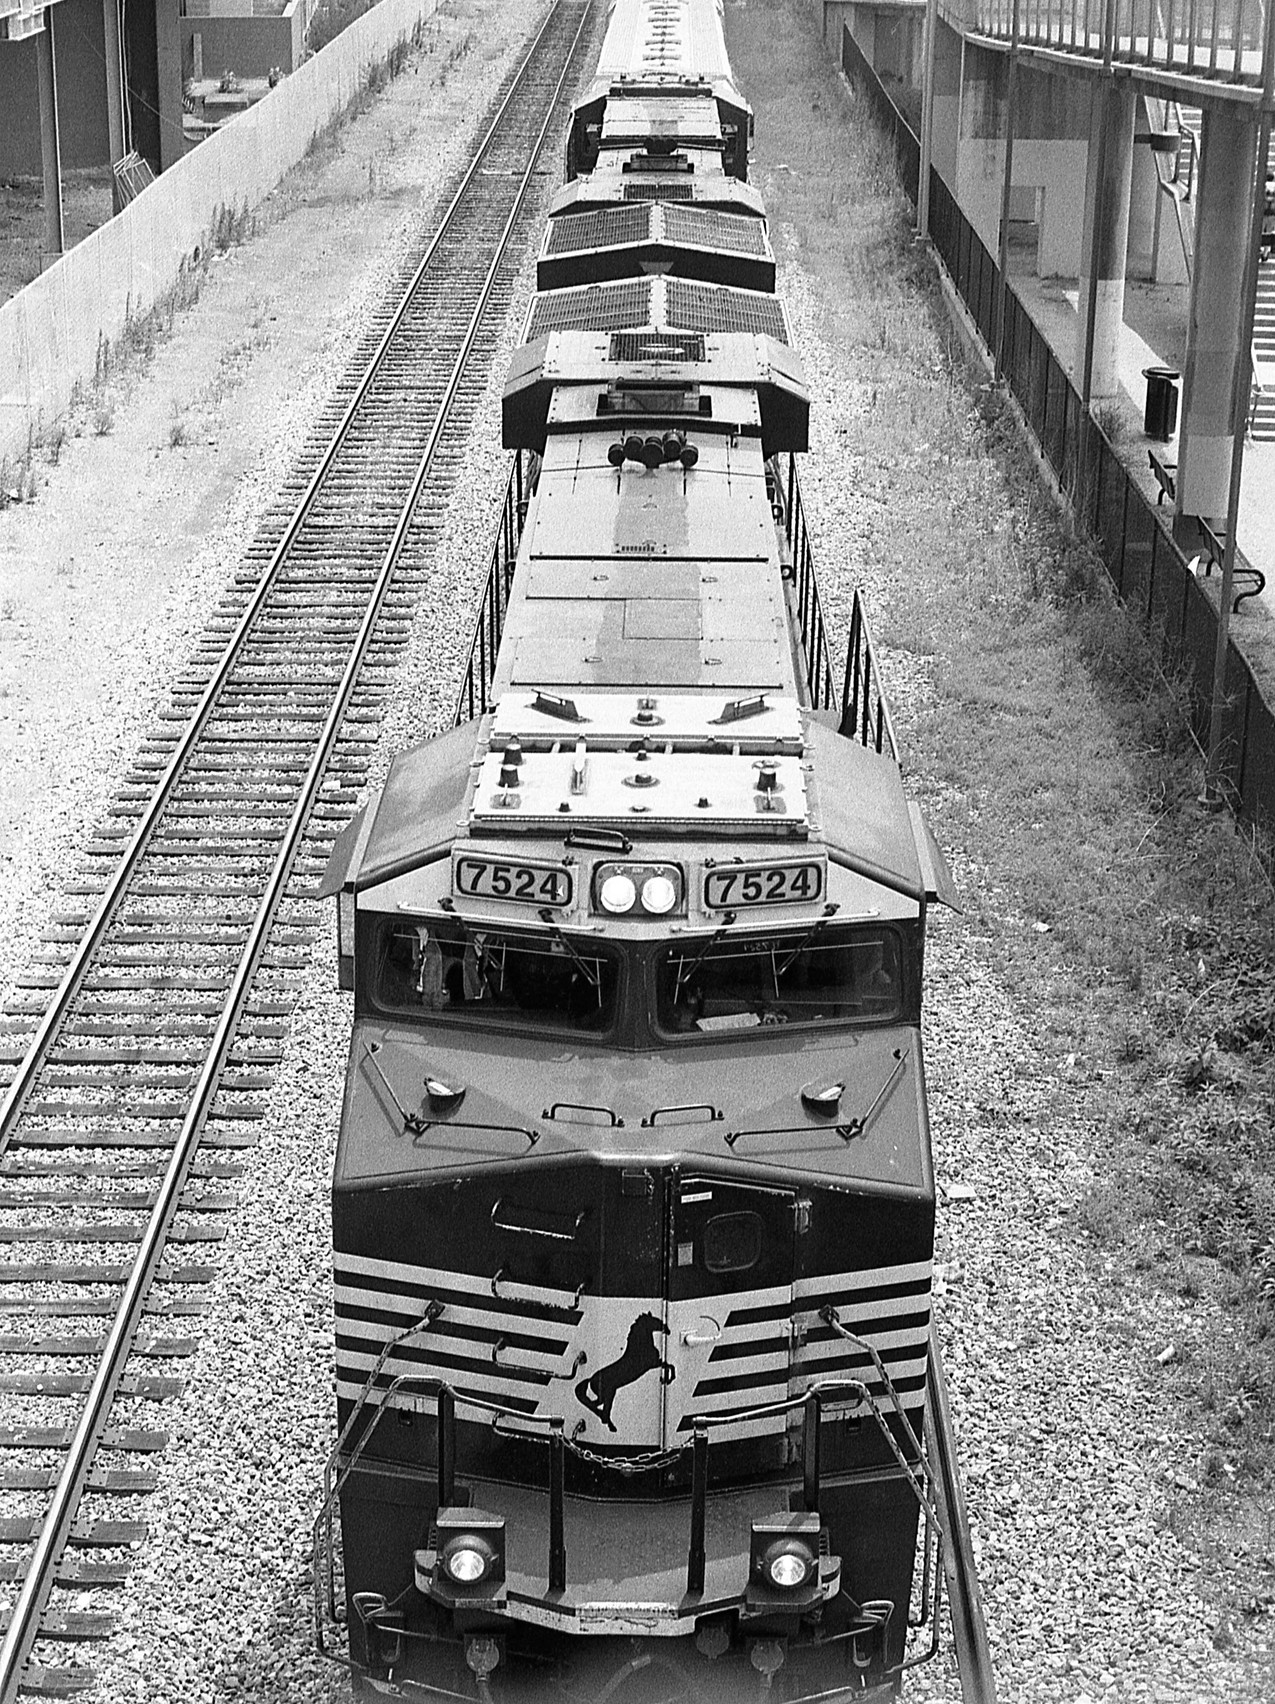 Train in Philadelphia, PA.